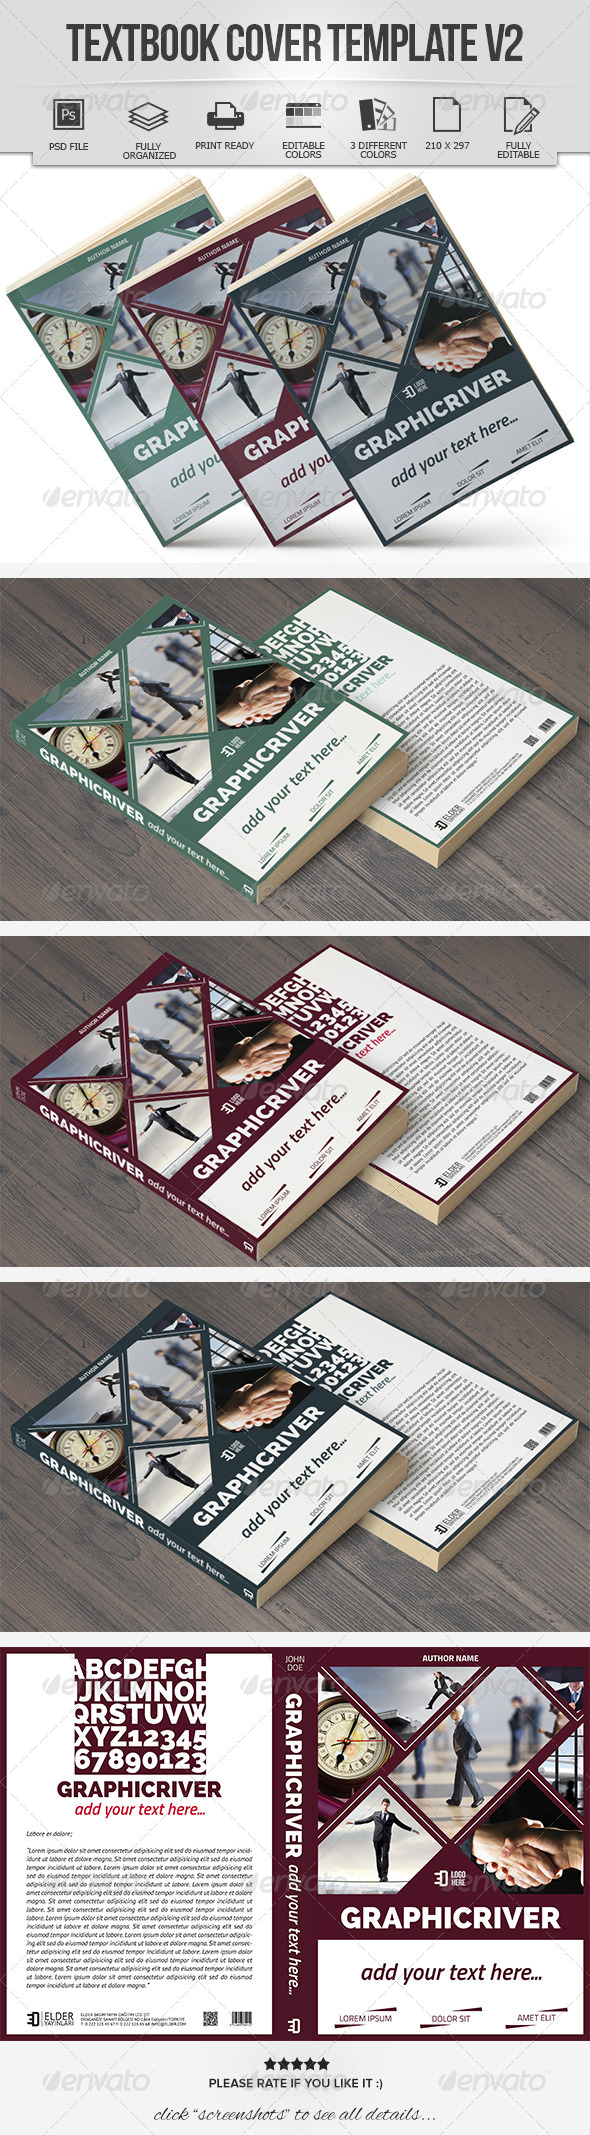 GraphicRiver Textbook Cover Template V2 7223353